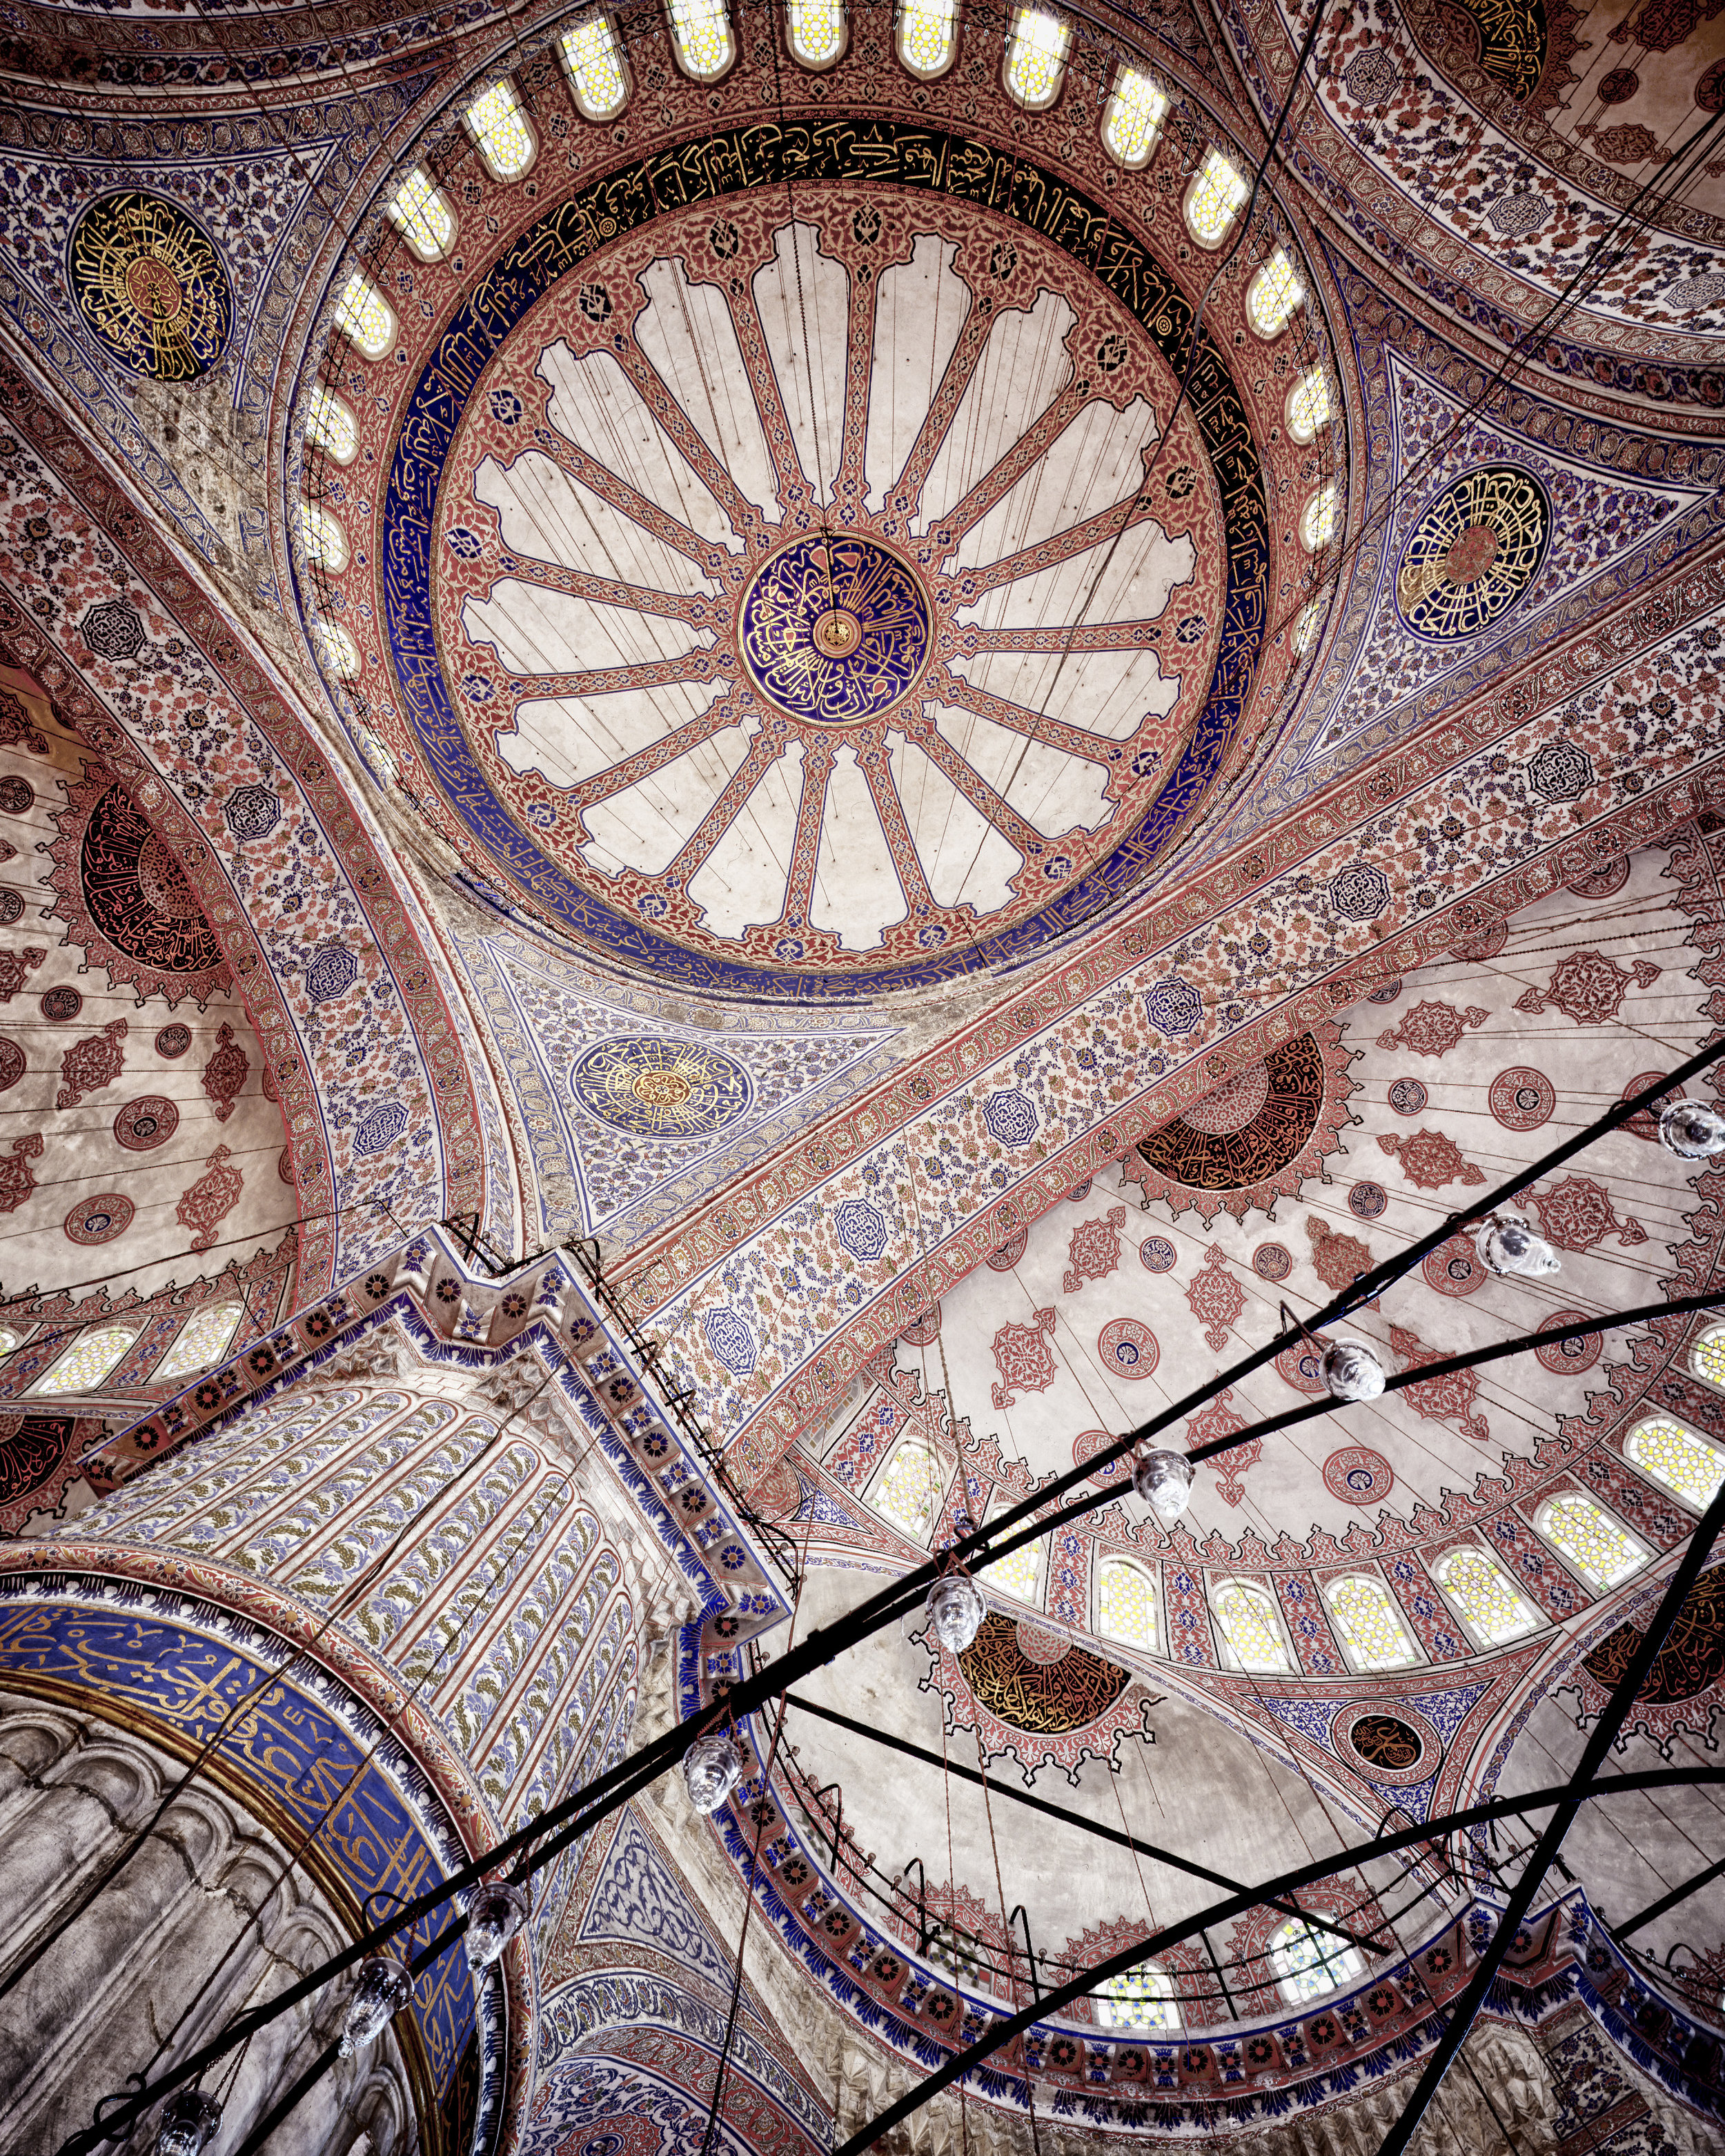 Sultan Ahmed Mosque - Istanbul, Turkey 1997